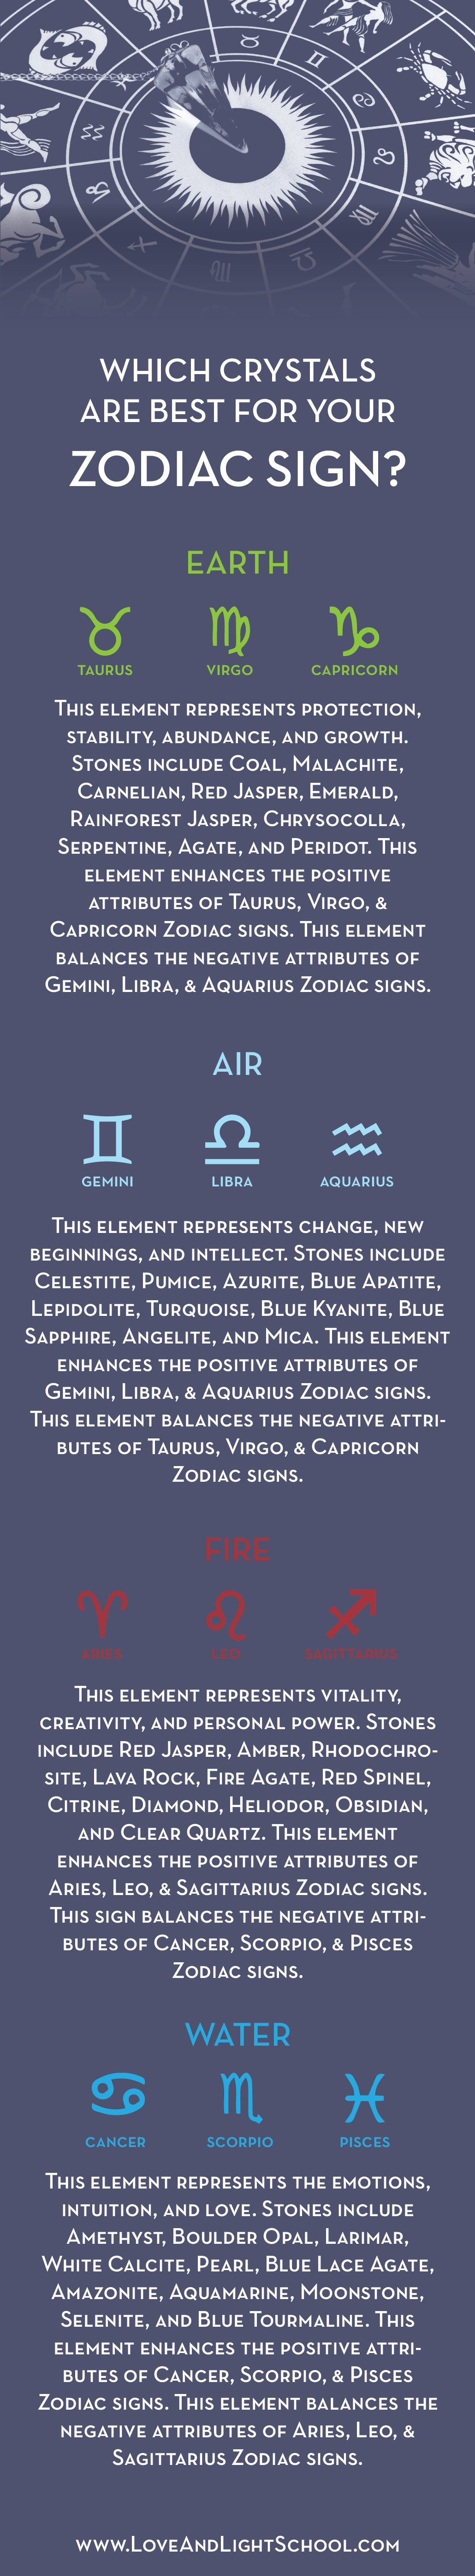 Which crystals are best for your Zodiac sign? | Birthstones